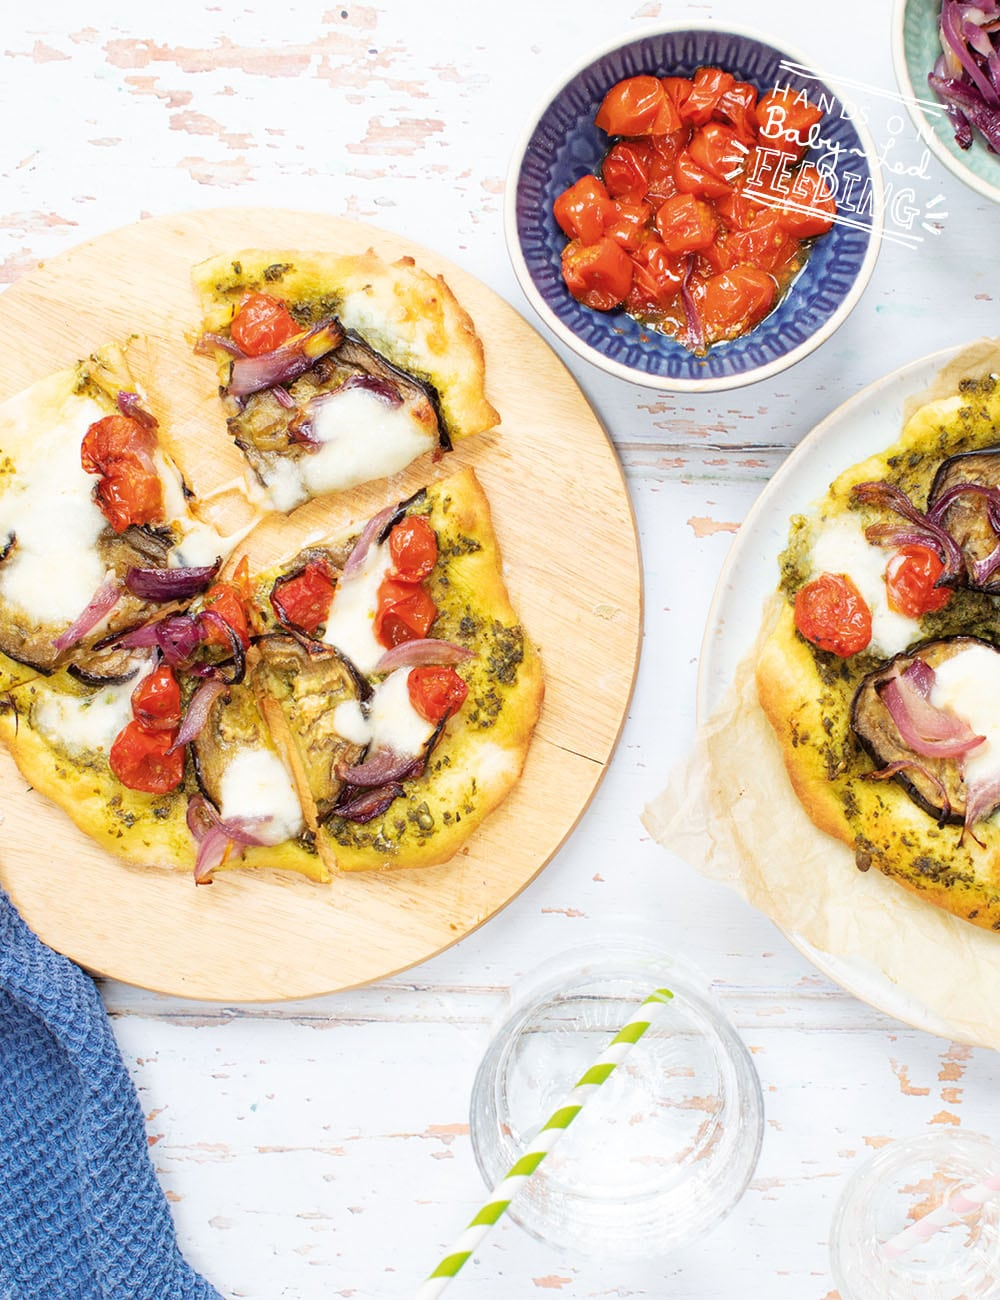 Baby Led Feeding Super Easy Pizzas with Pesto and Roasted Veggies_Recipe2